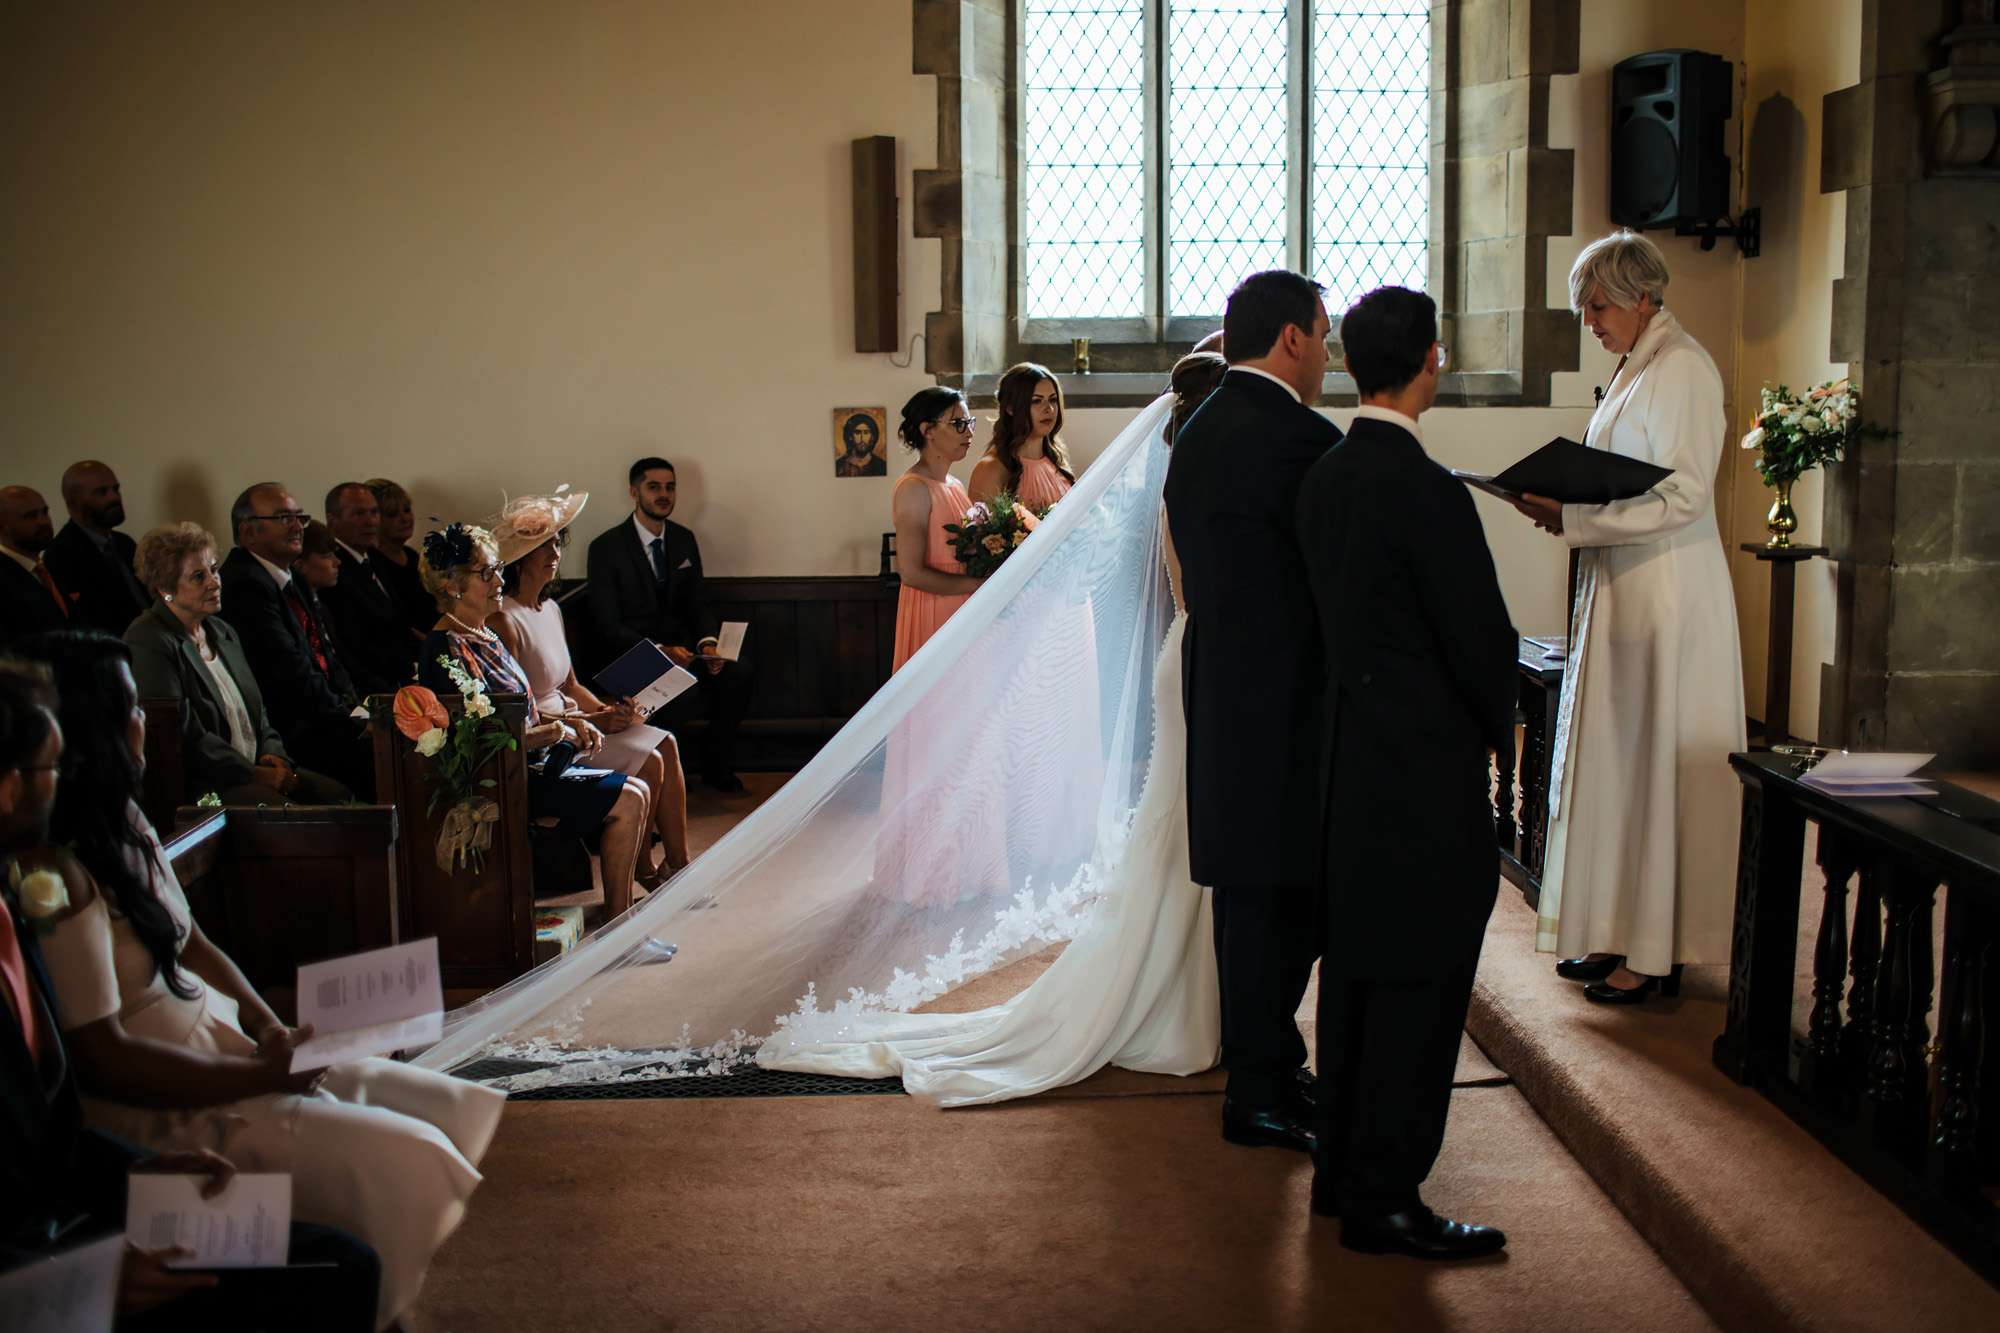 Bride and groom standing at the alter during their wedding